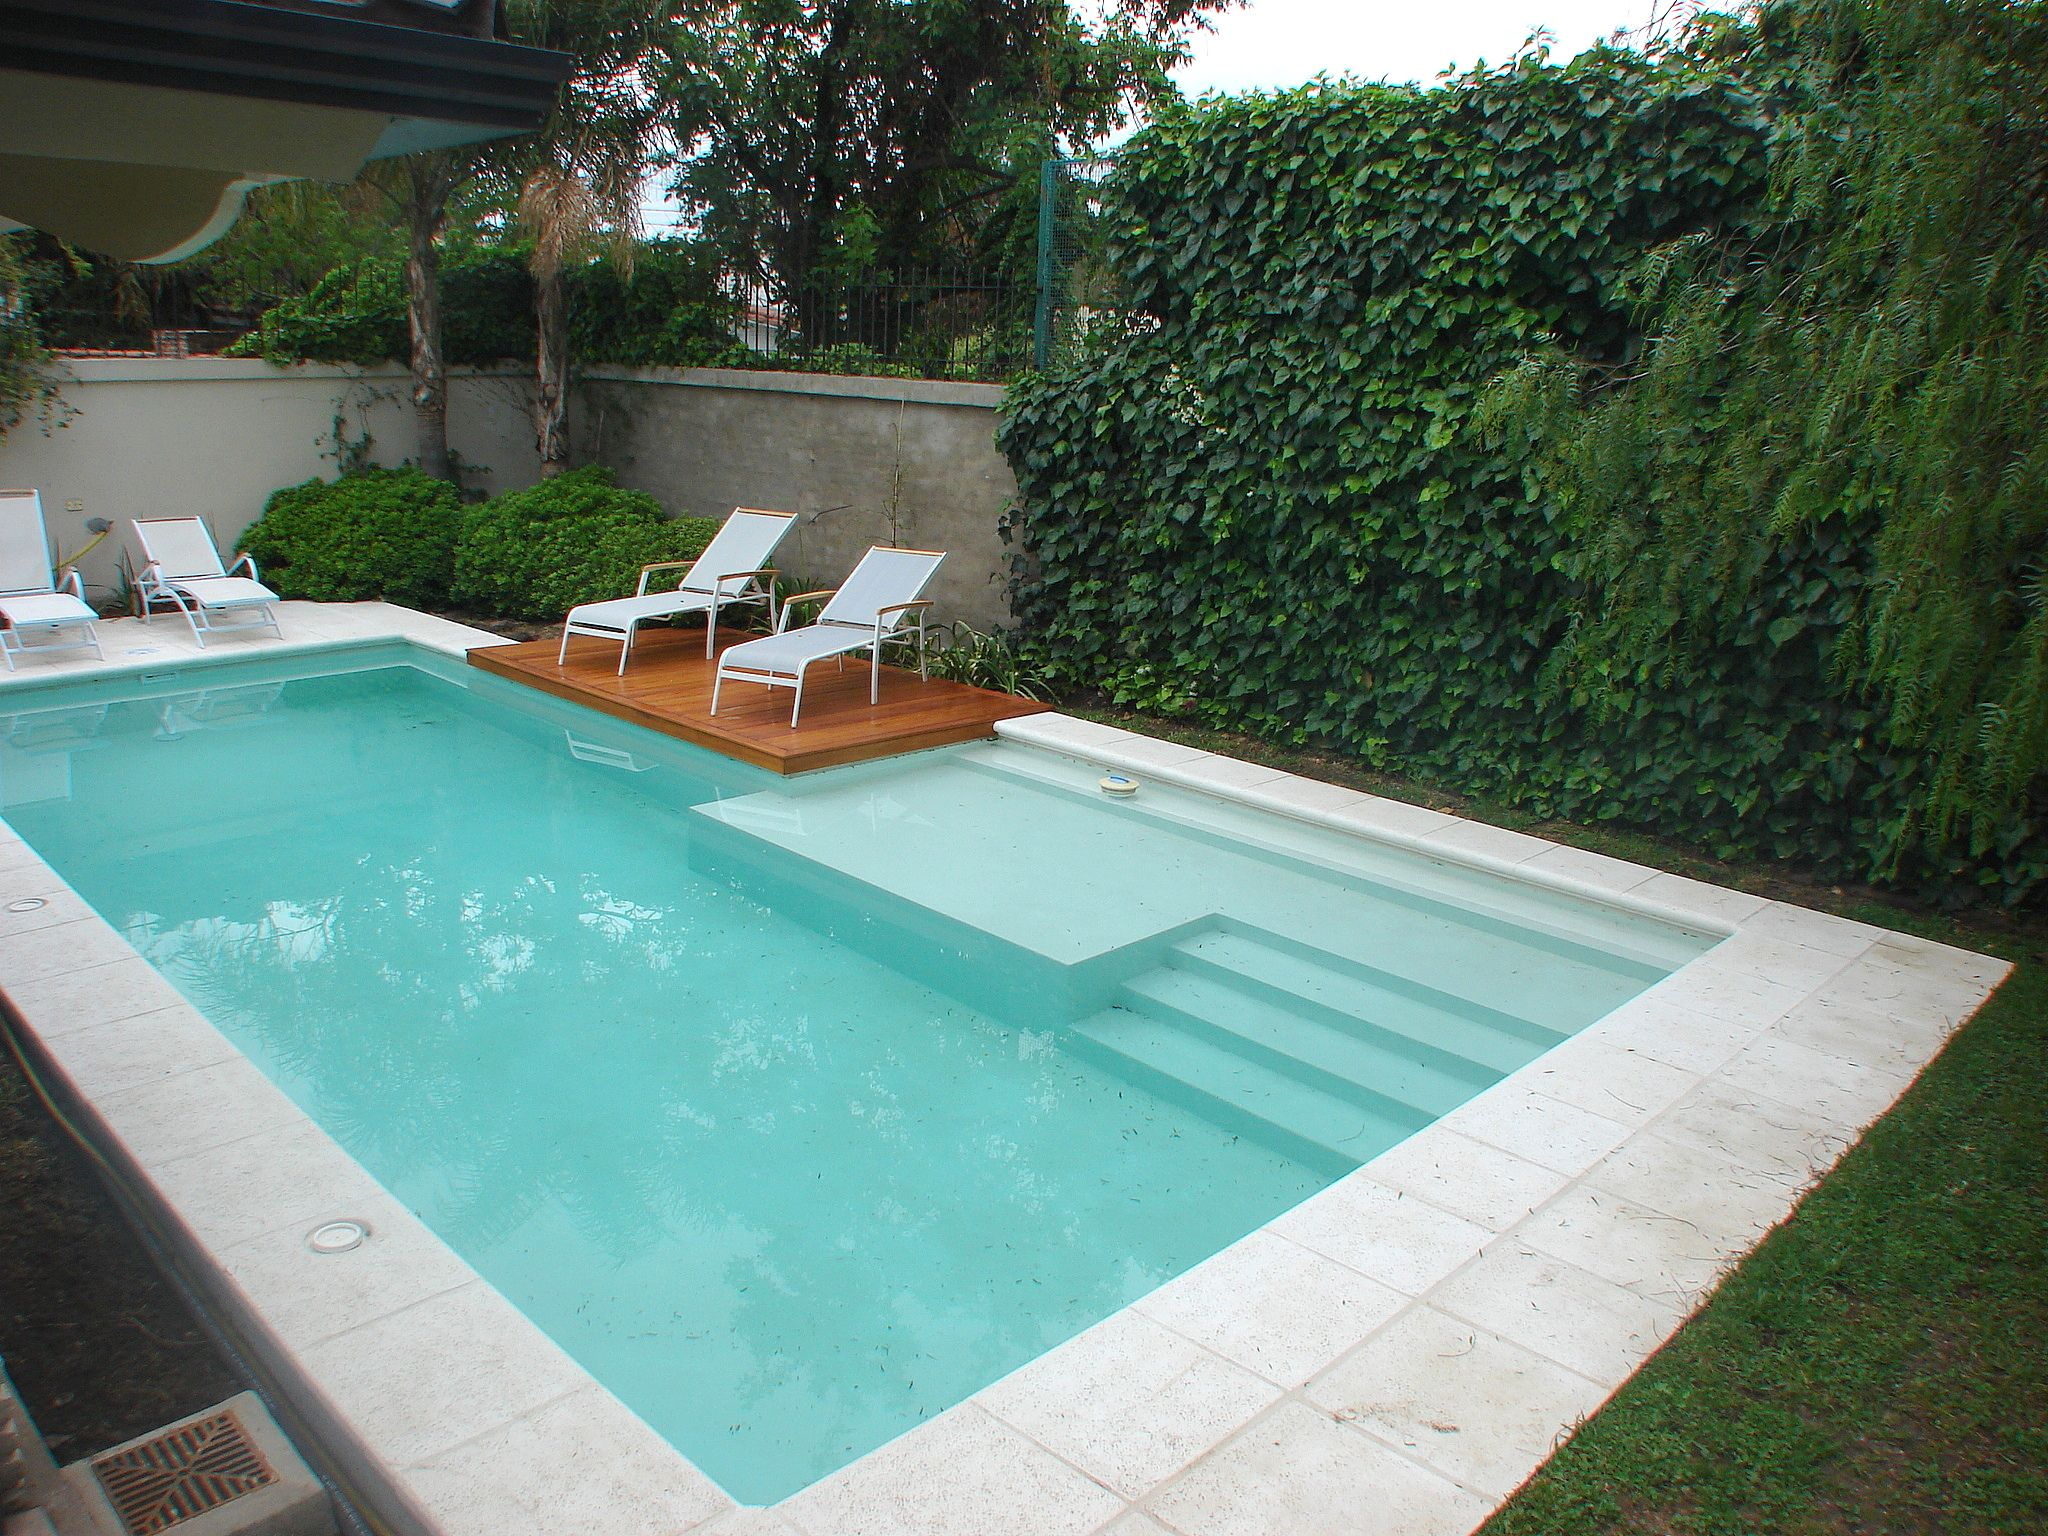 piscina familiar swimmingpool deck de madera On material para albercas